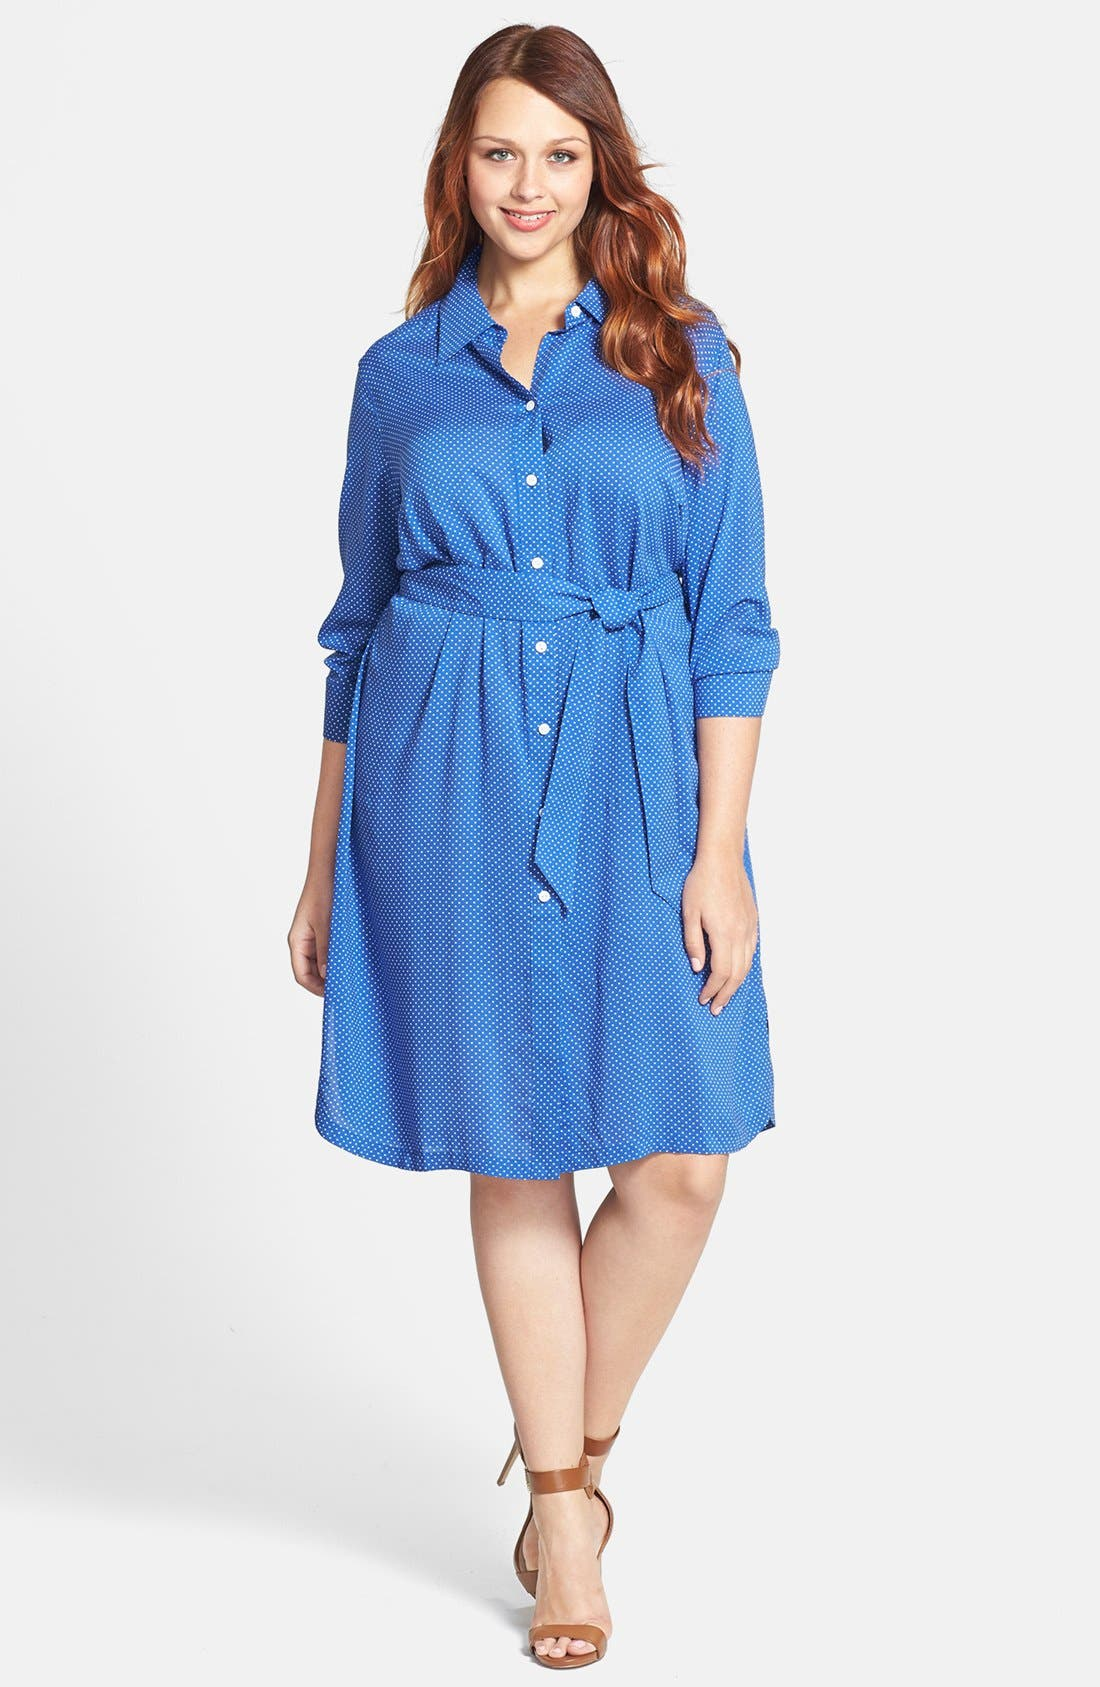 Alternate Image 1 Selected - Foxcroft Dot Print Shirtdress (Plus Size)